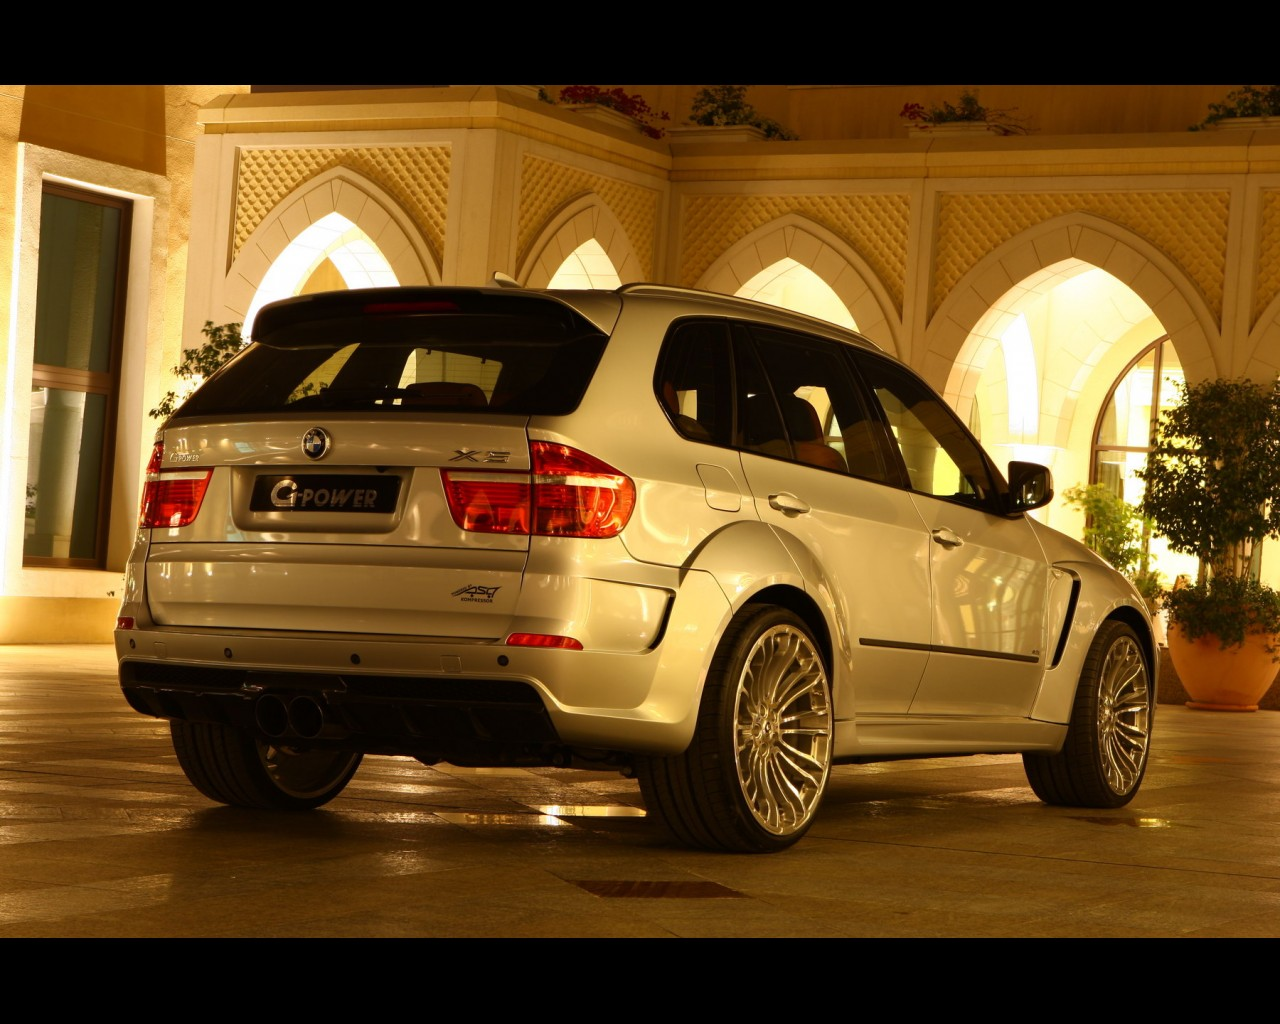 g-power-typhoon-based-on-bmw-x5-16.jpg